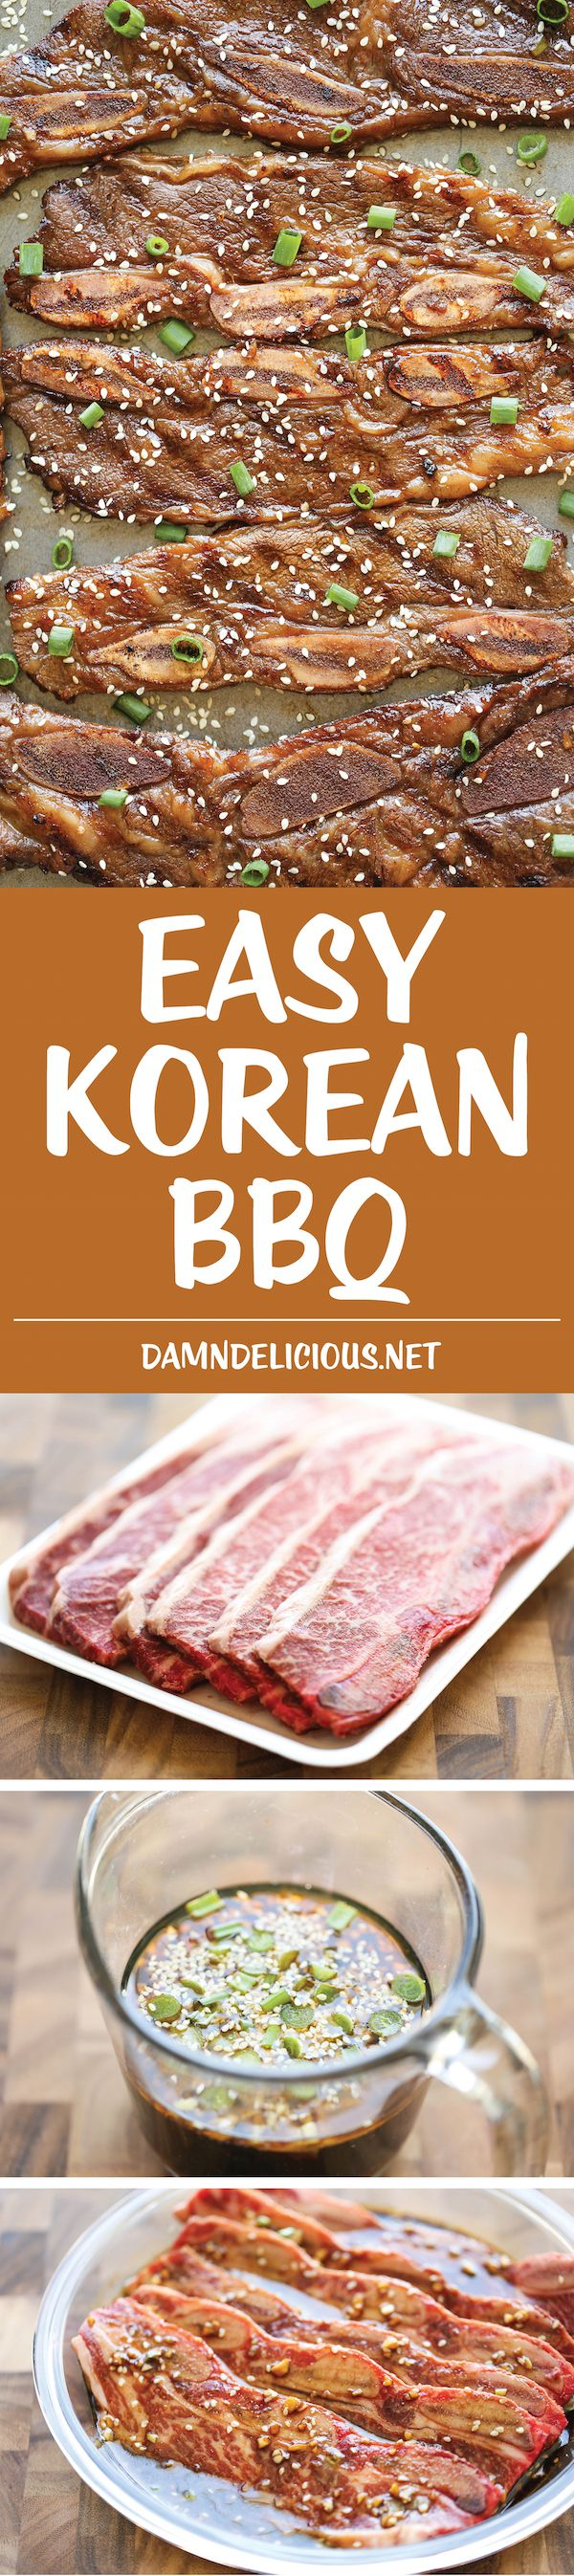 Easy Korean BBQ - Korean BBQ can be made right at home - it only takes 10 min prep and tastes so much better than eating-out! And it's cheaper too!